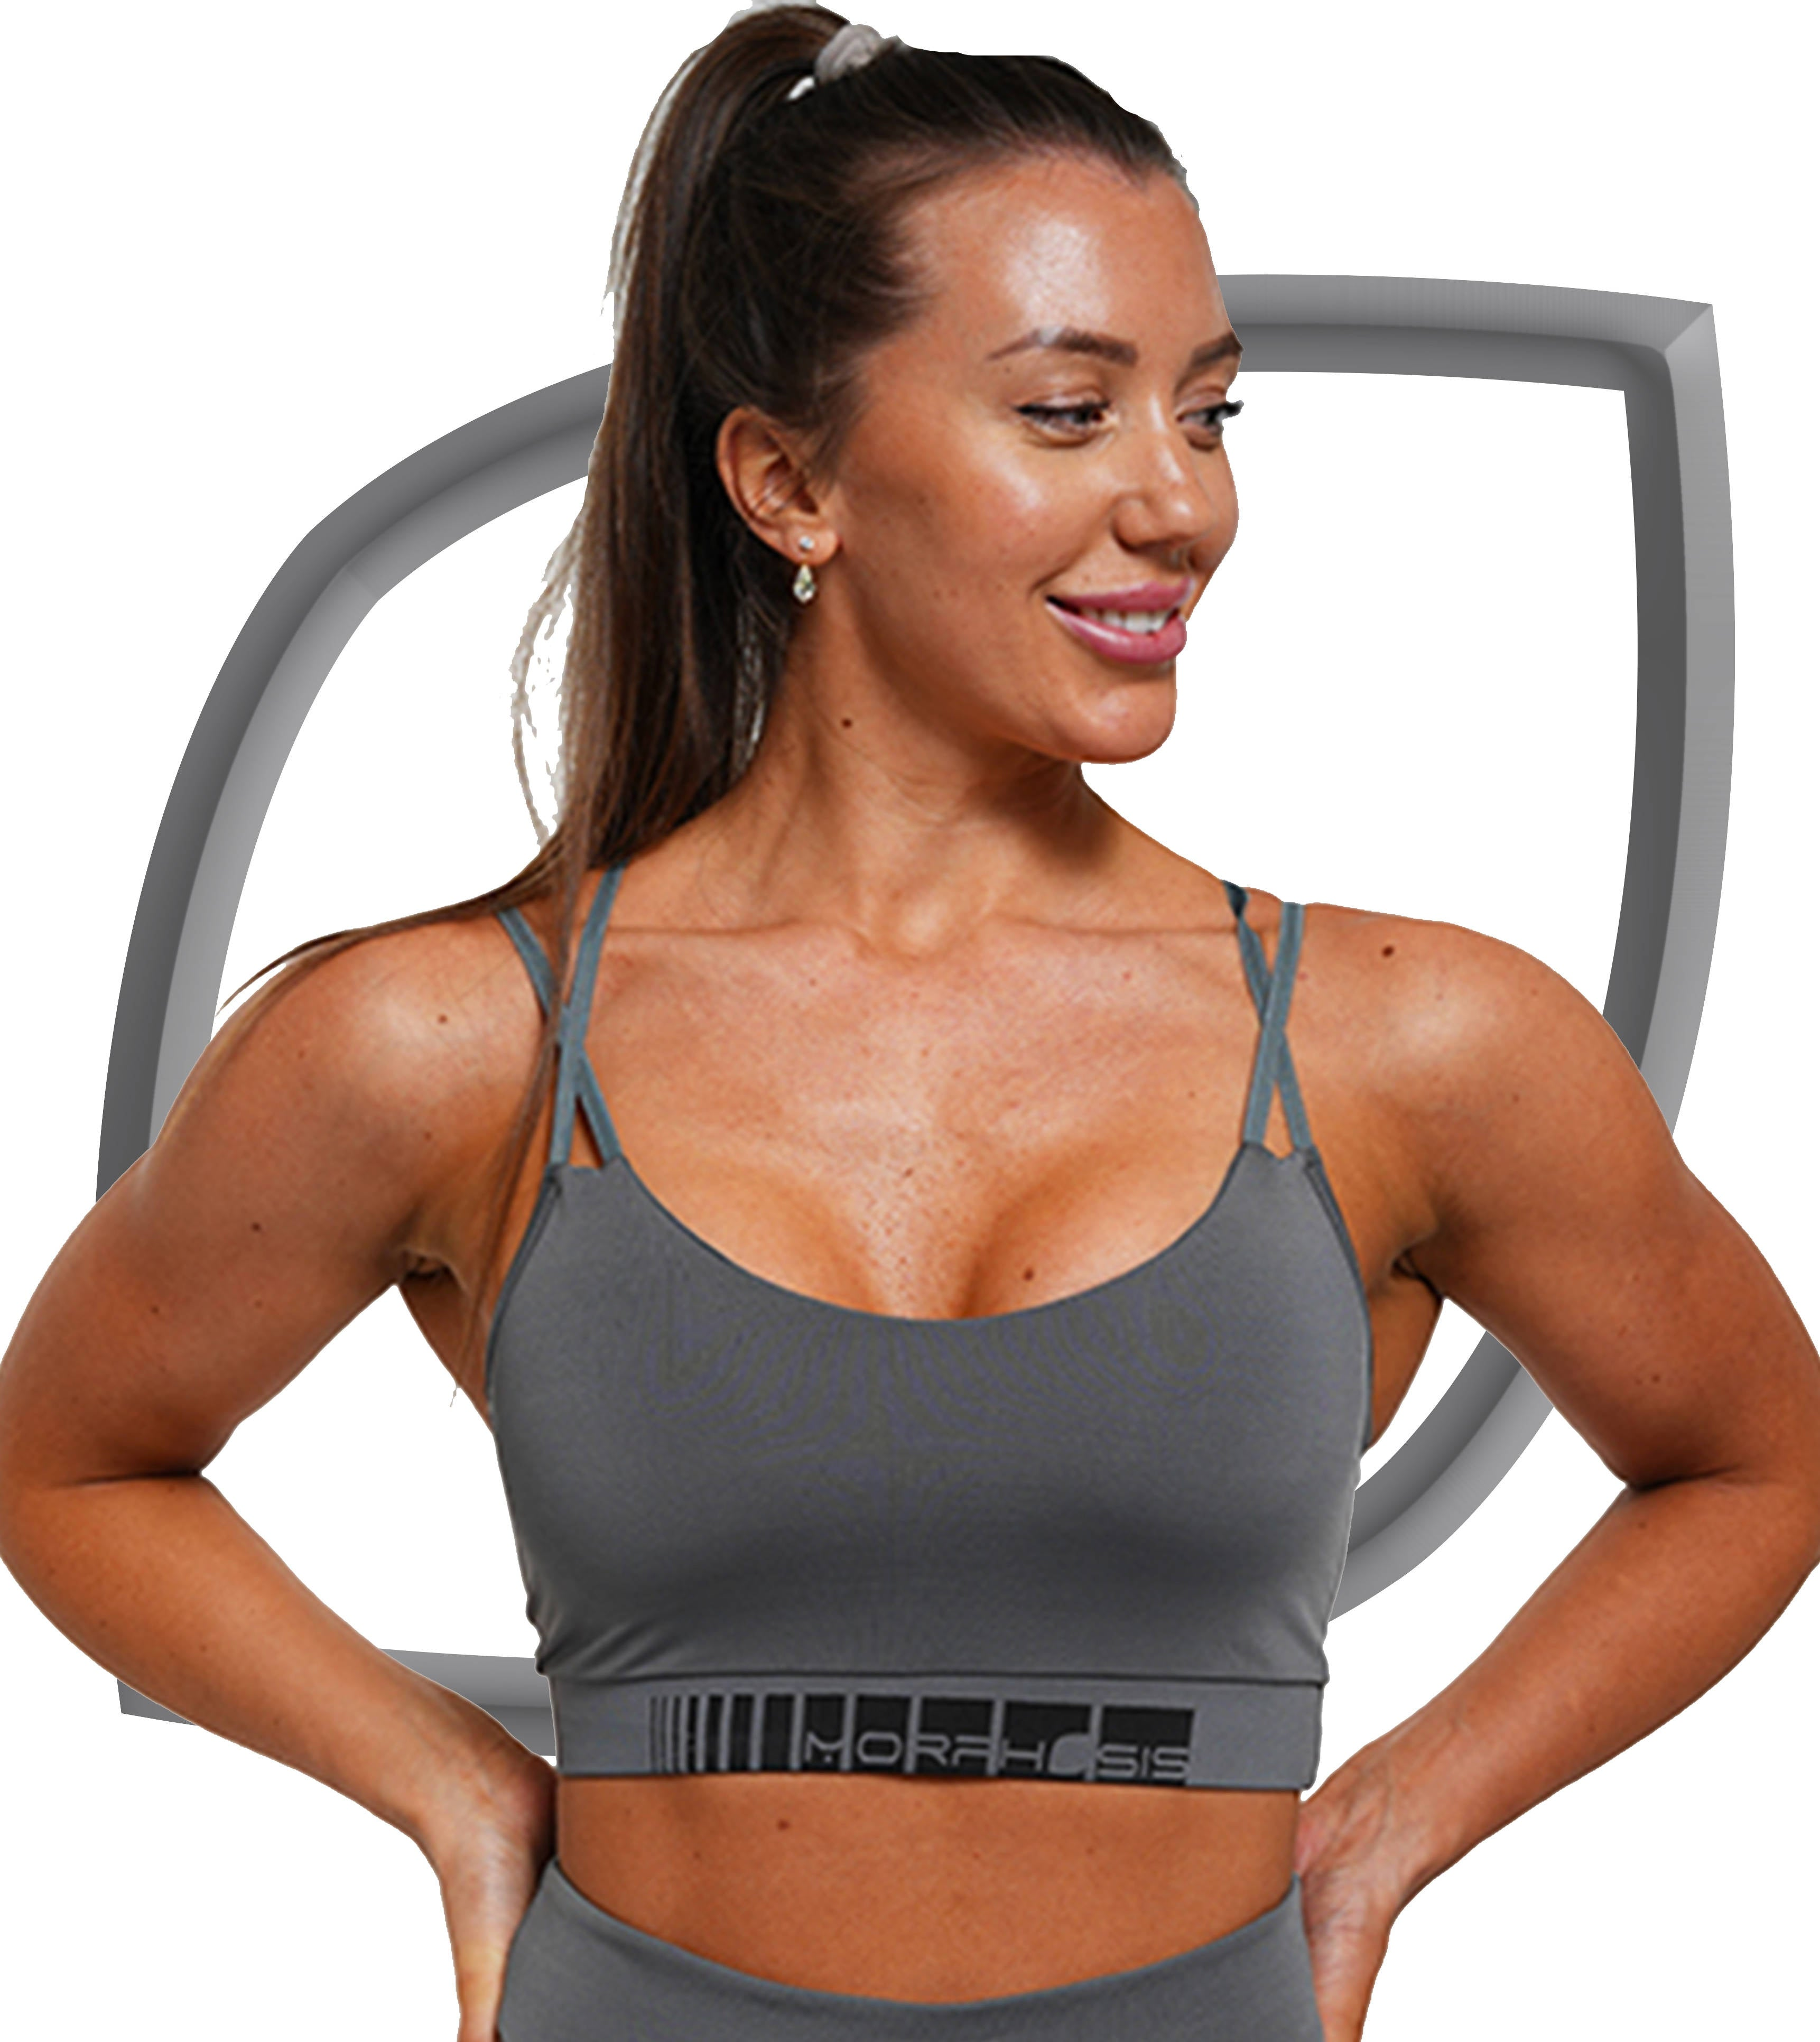 padded sports bra in grey with black details